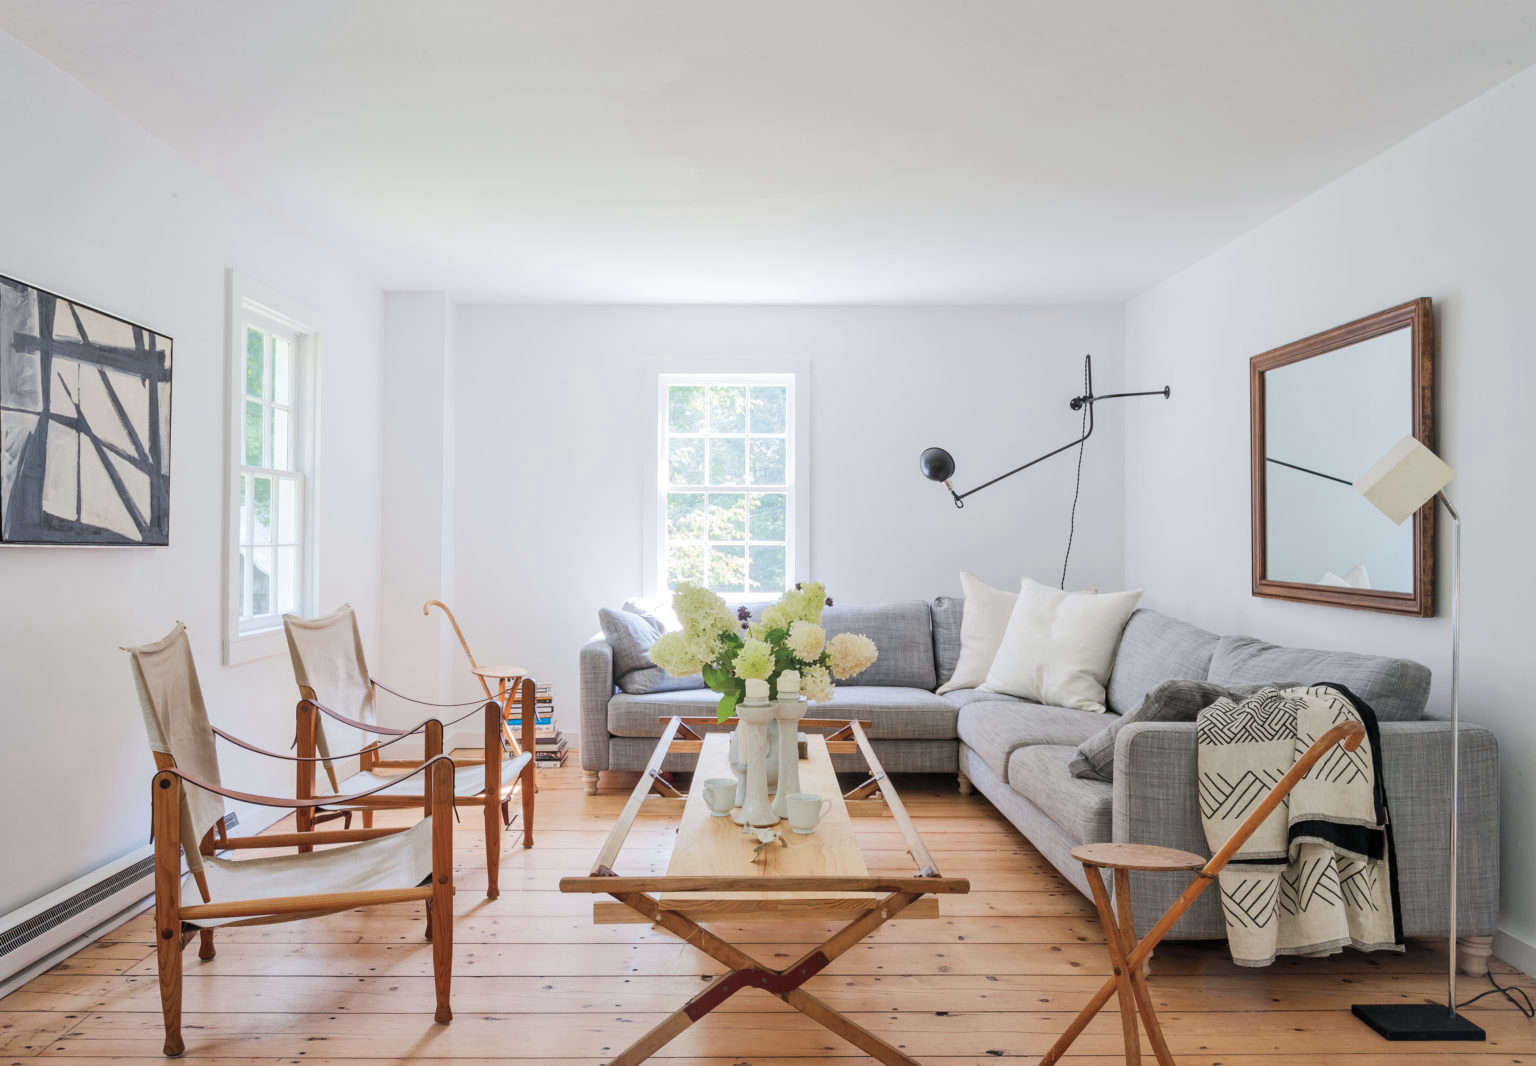 Expert Advice 11 Tips for Making a Room Look Bigger portrait 3